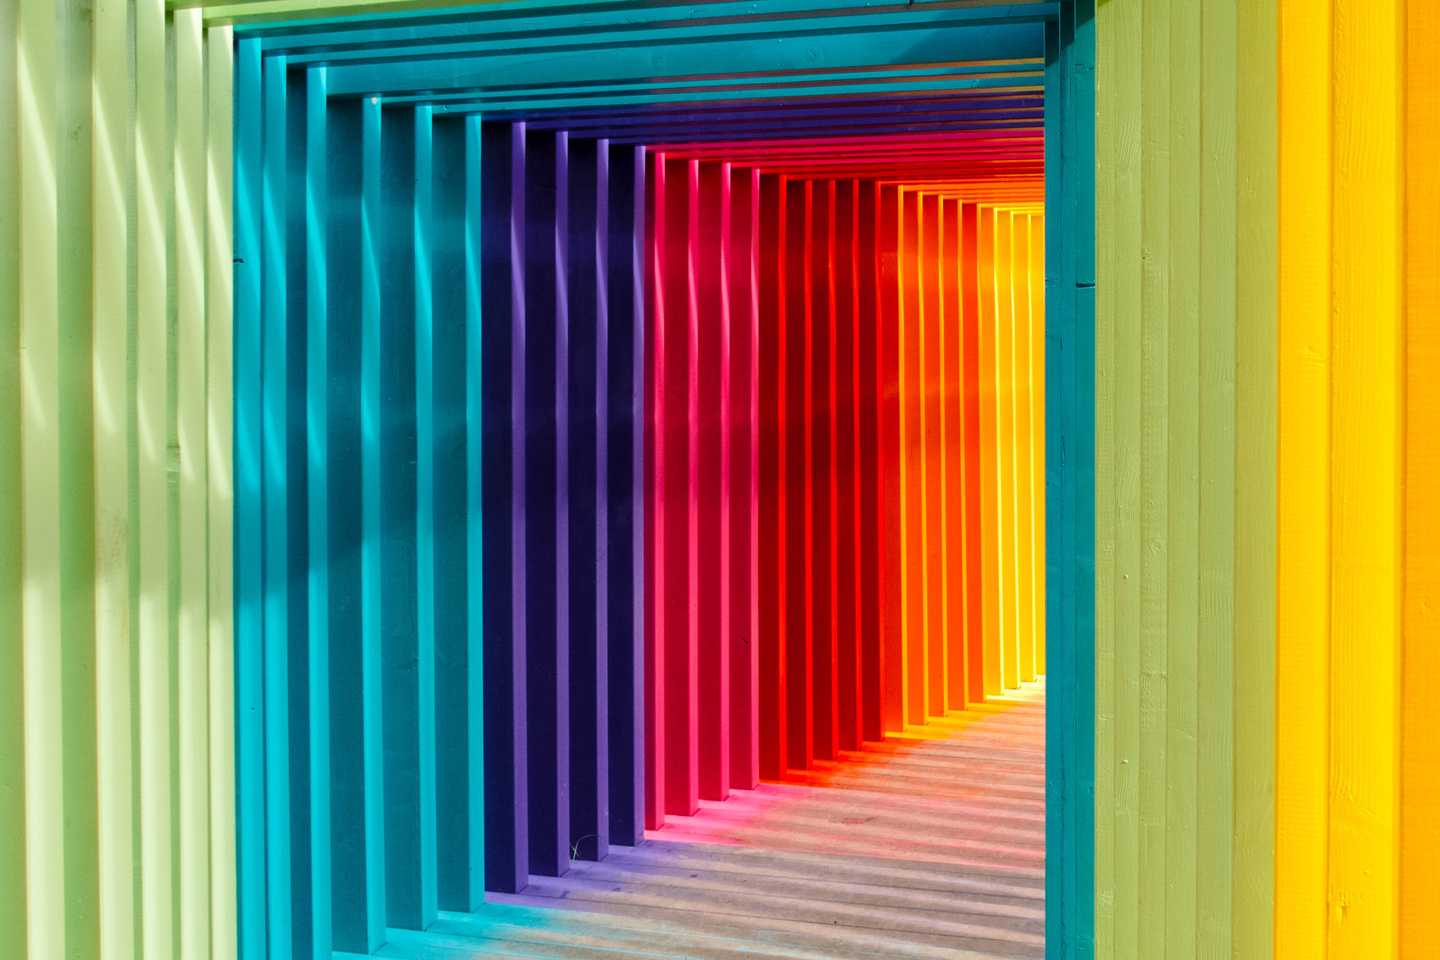 A brightly colored tunnel.